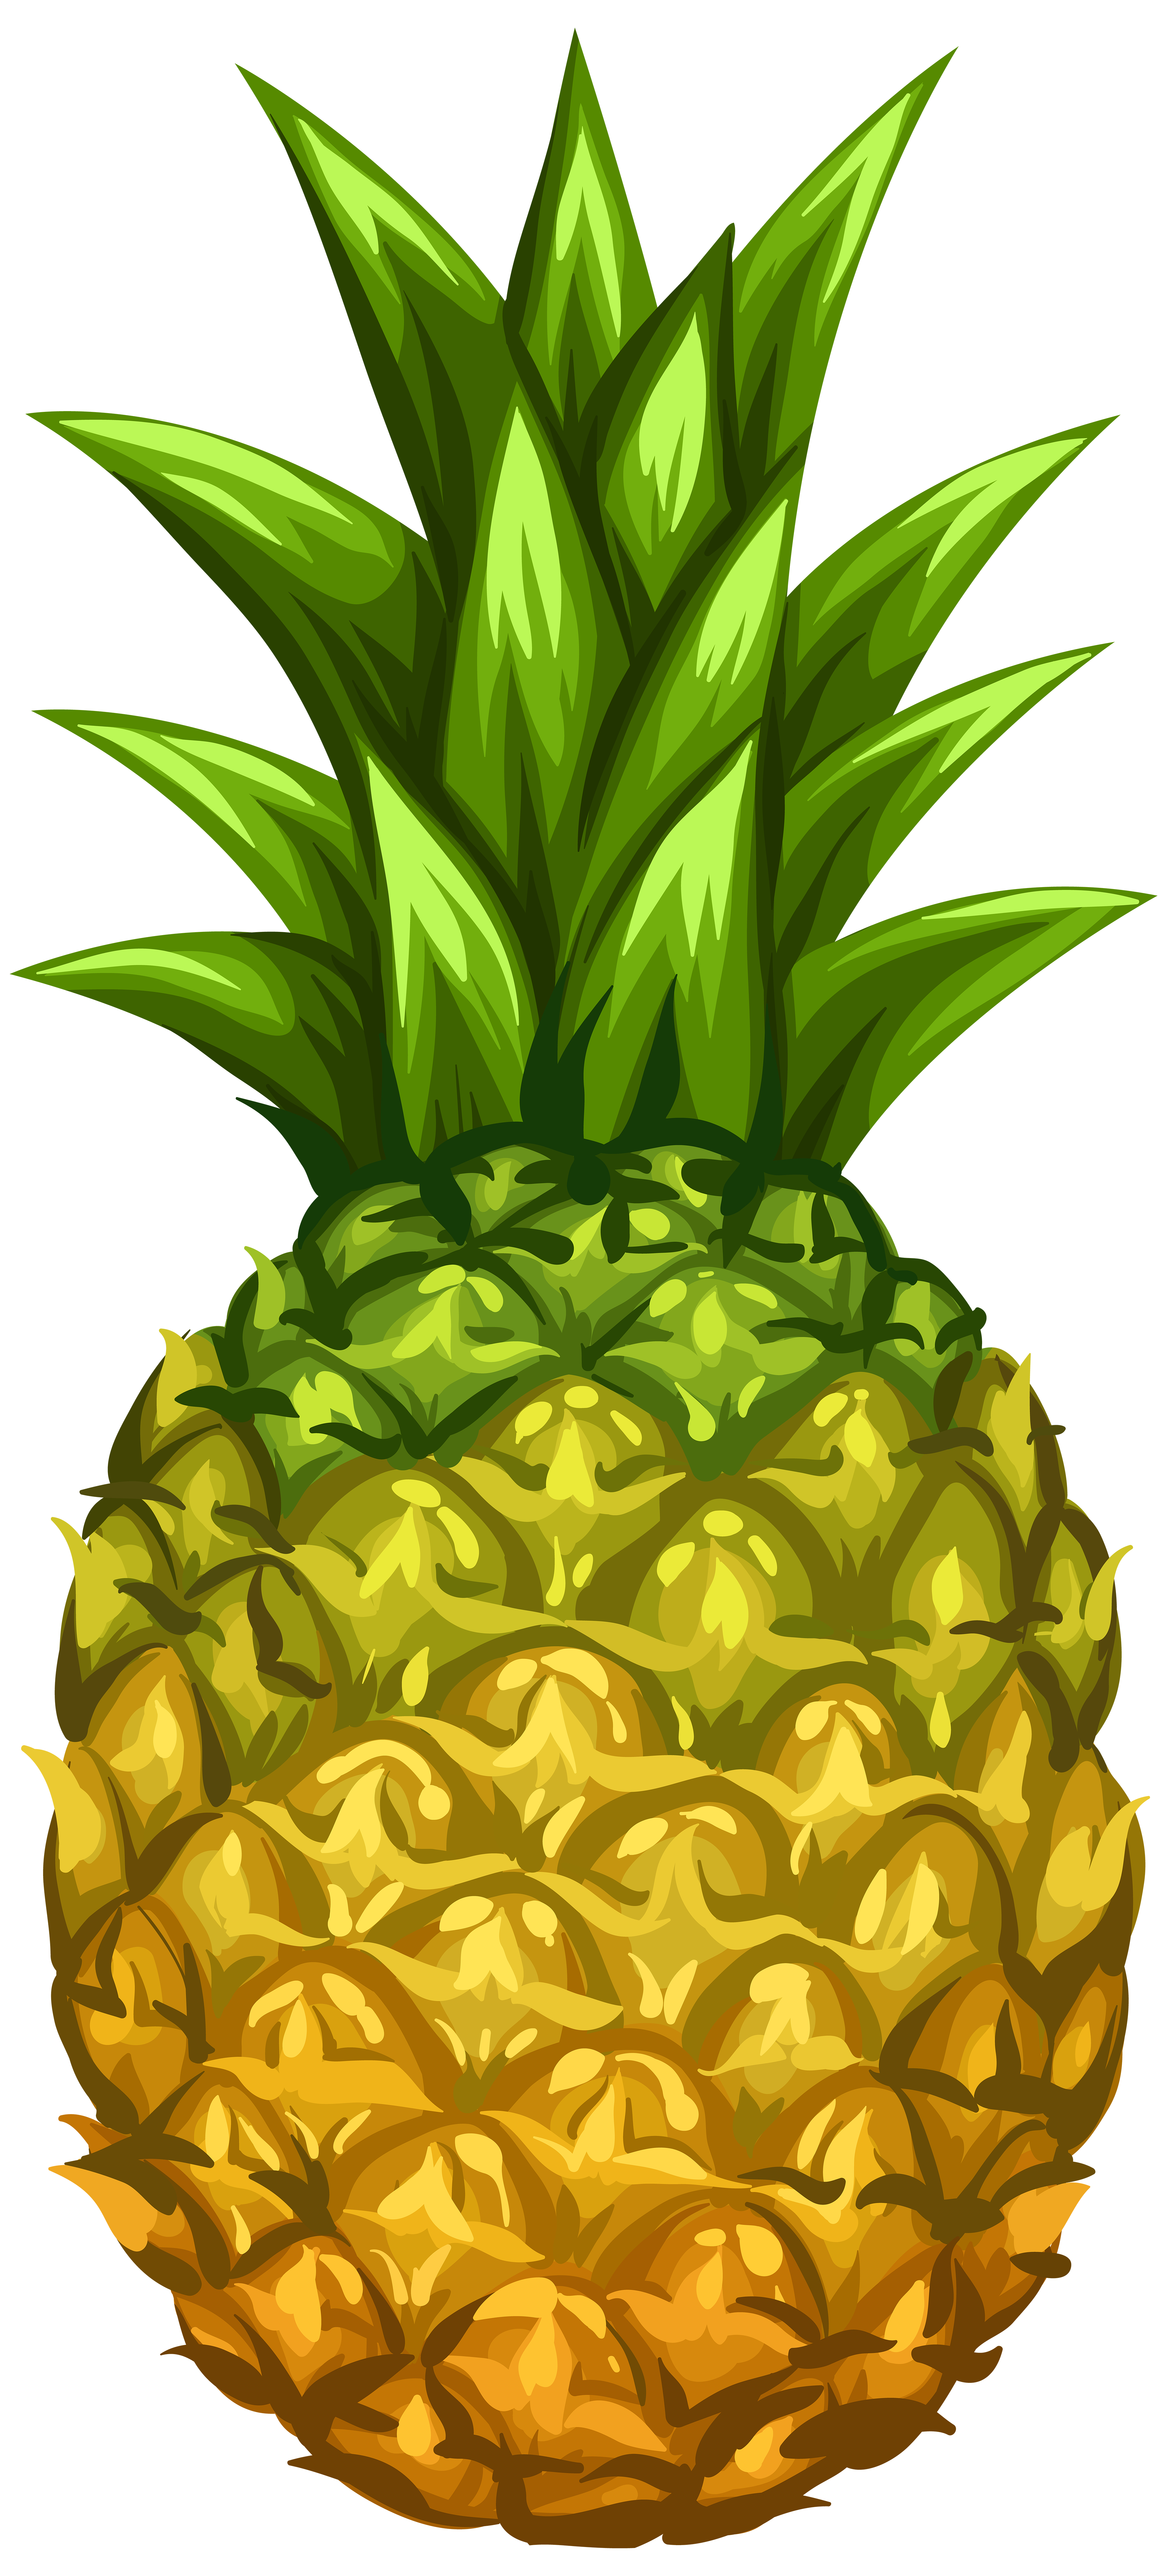 Pineapple clipart bow, Pineapple bow Transparent FREE for ...